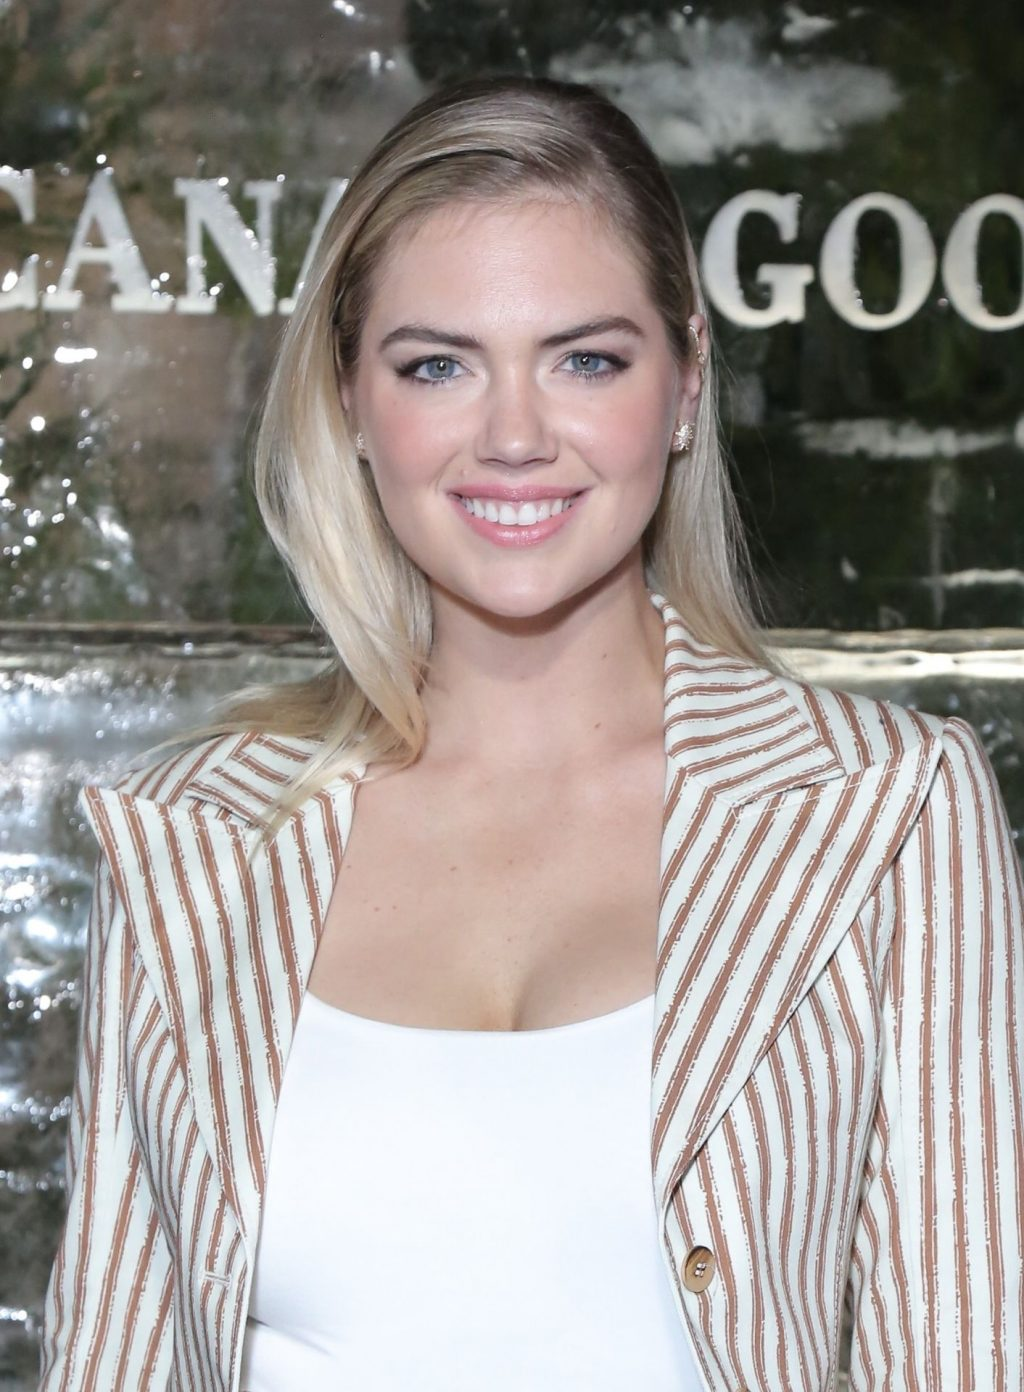 Kate Upton Sexy The Fappening Blog 9 1024x1392 - Kate Upton Attends Canada Goose And Vogue Cocktails & Conversations (104 Photos)